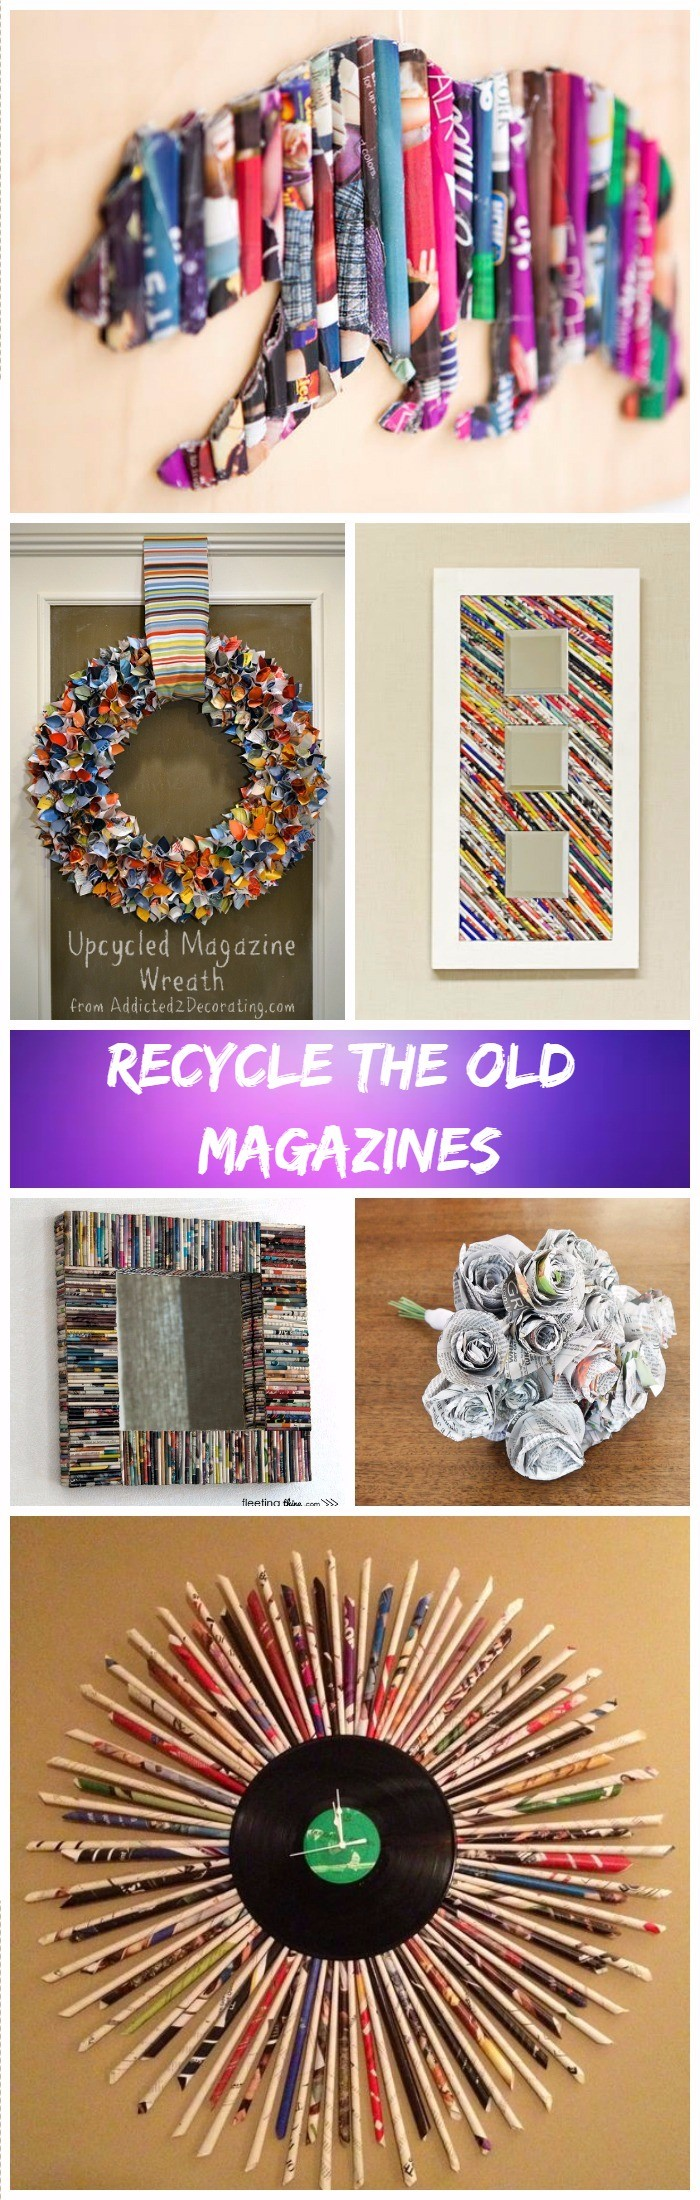 DIY Ideas To Recycle Magazines